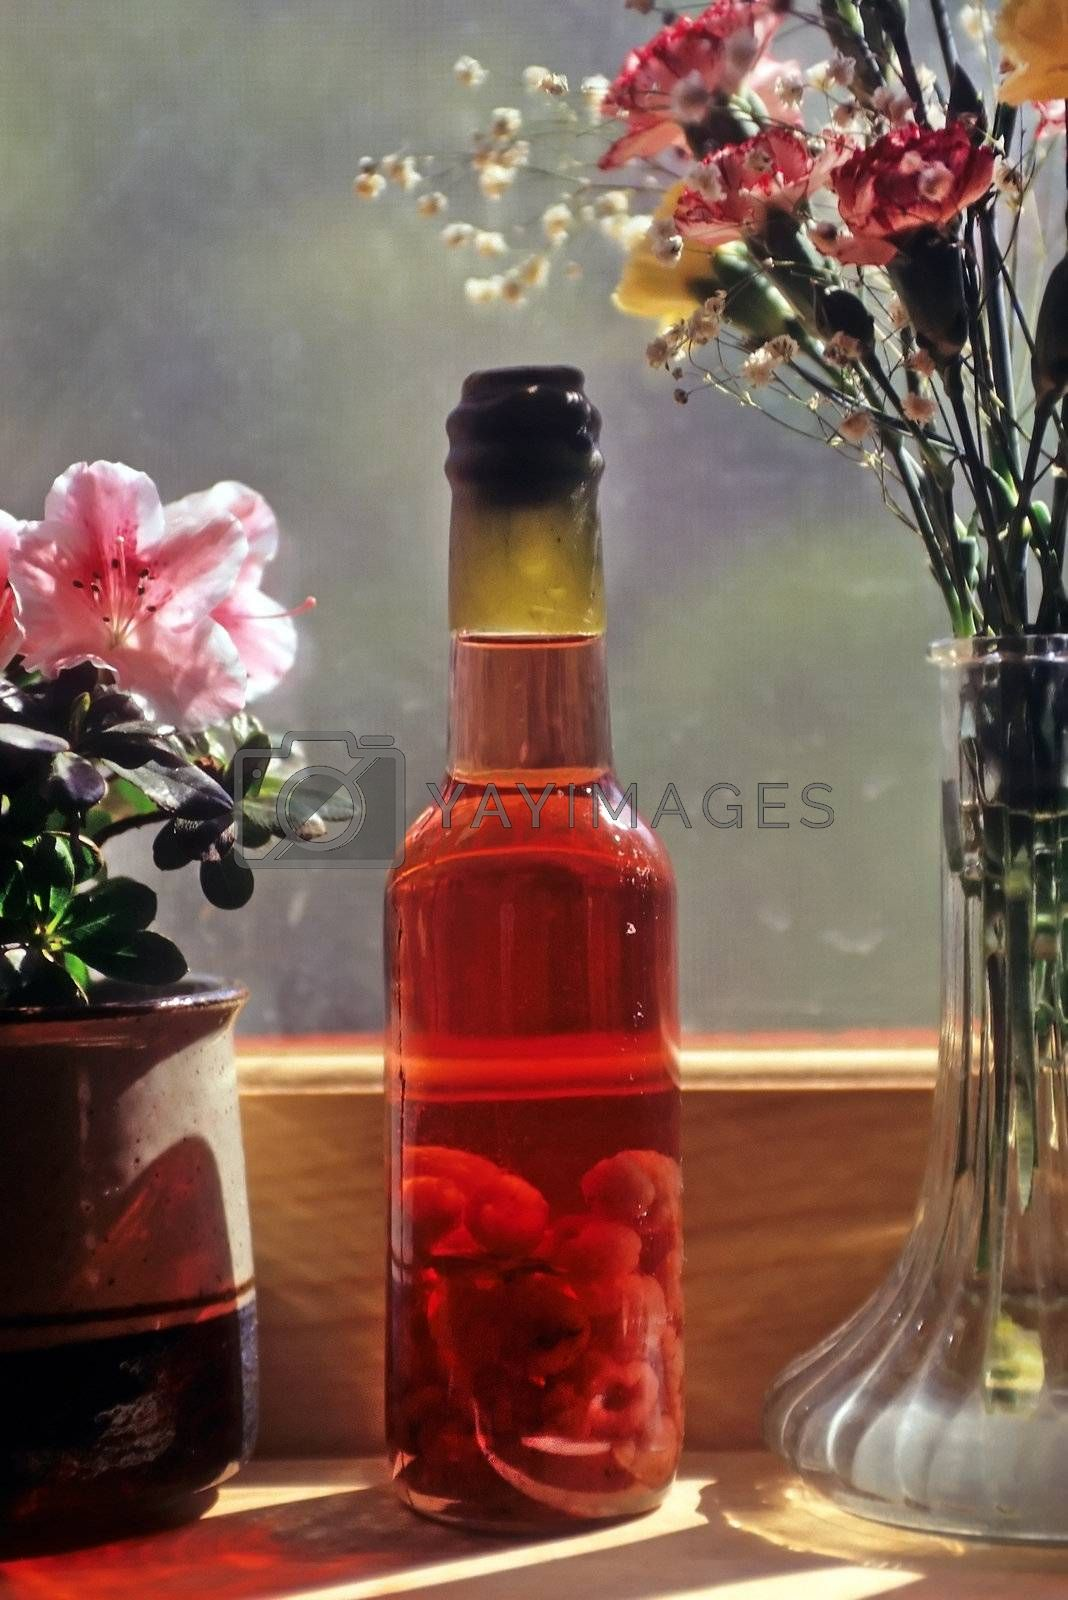 One bottle of raspberry vinegar with a wax stopper sitting on a window sill next to two containers of flowers.